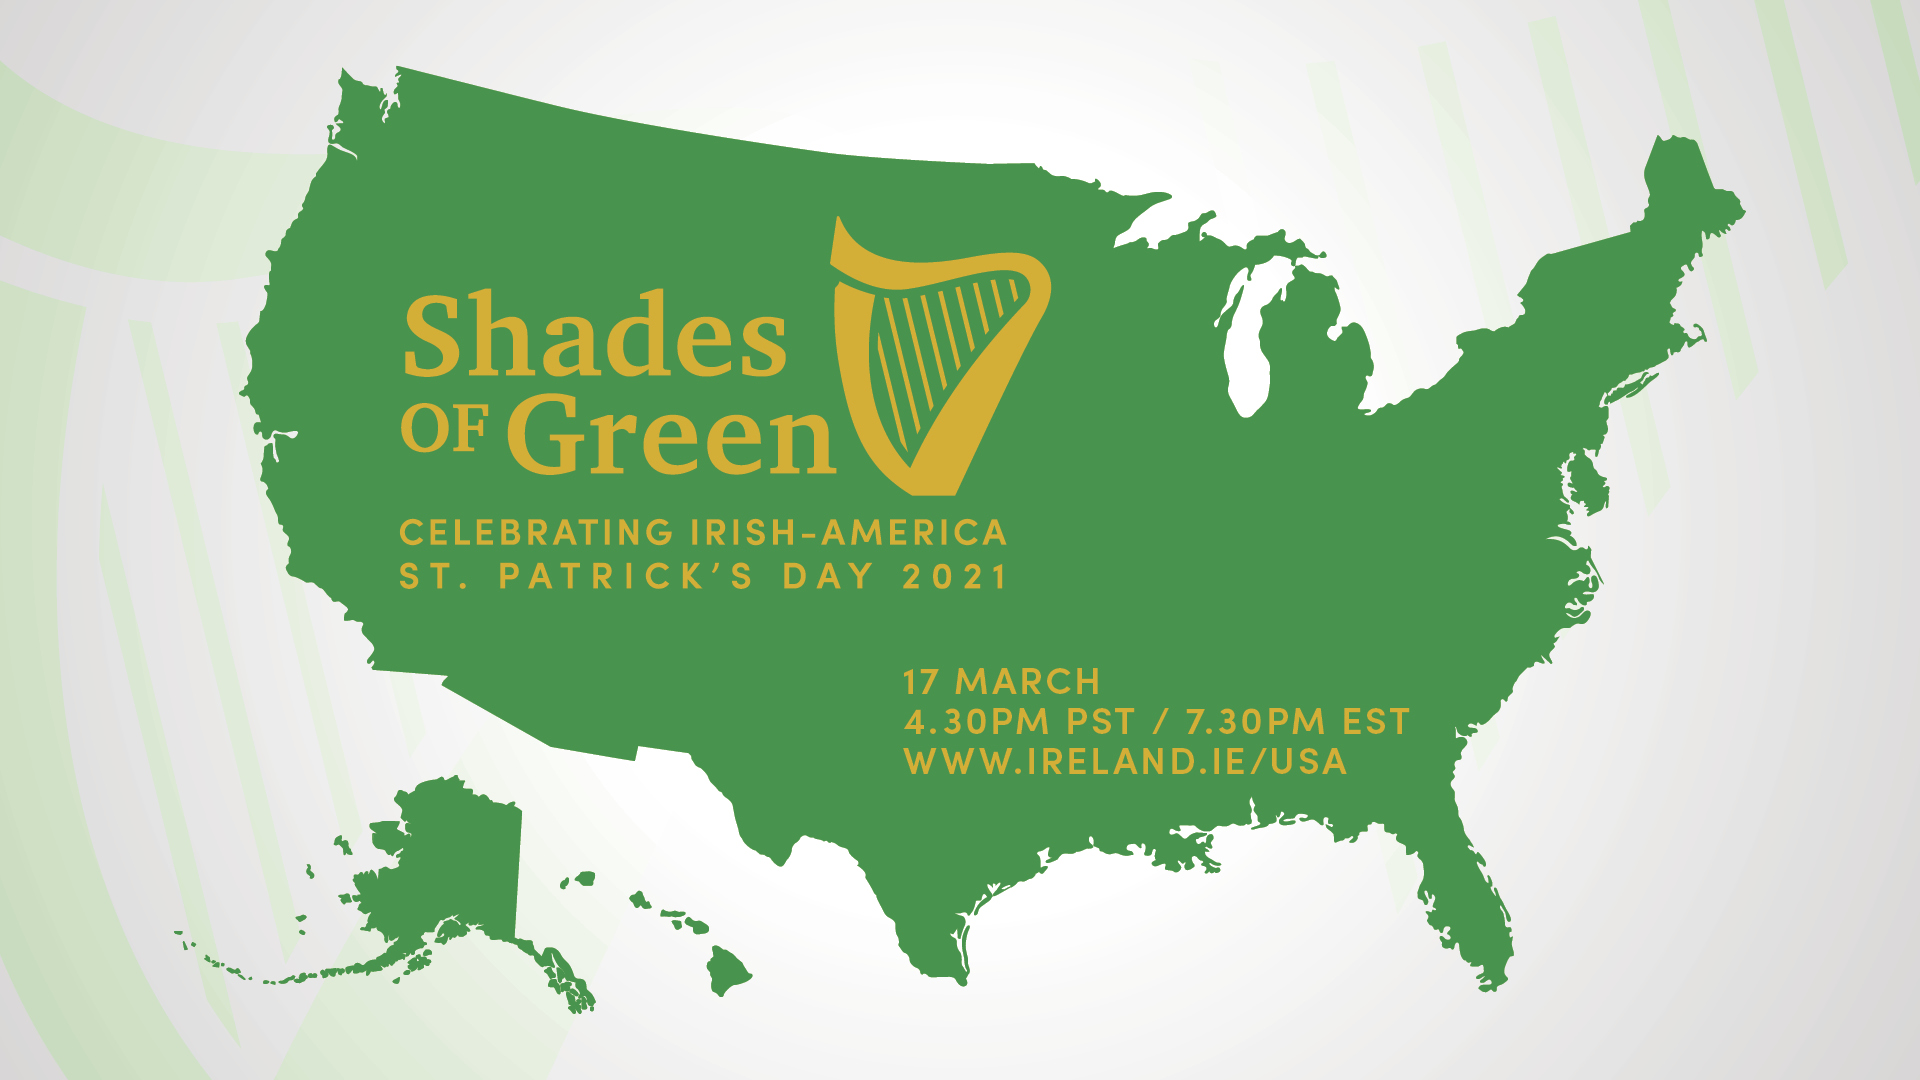 Shades of Green-St Patrick's Day Celebration of Irish America